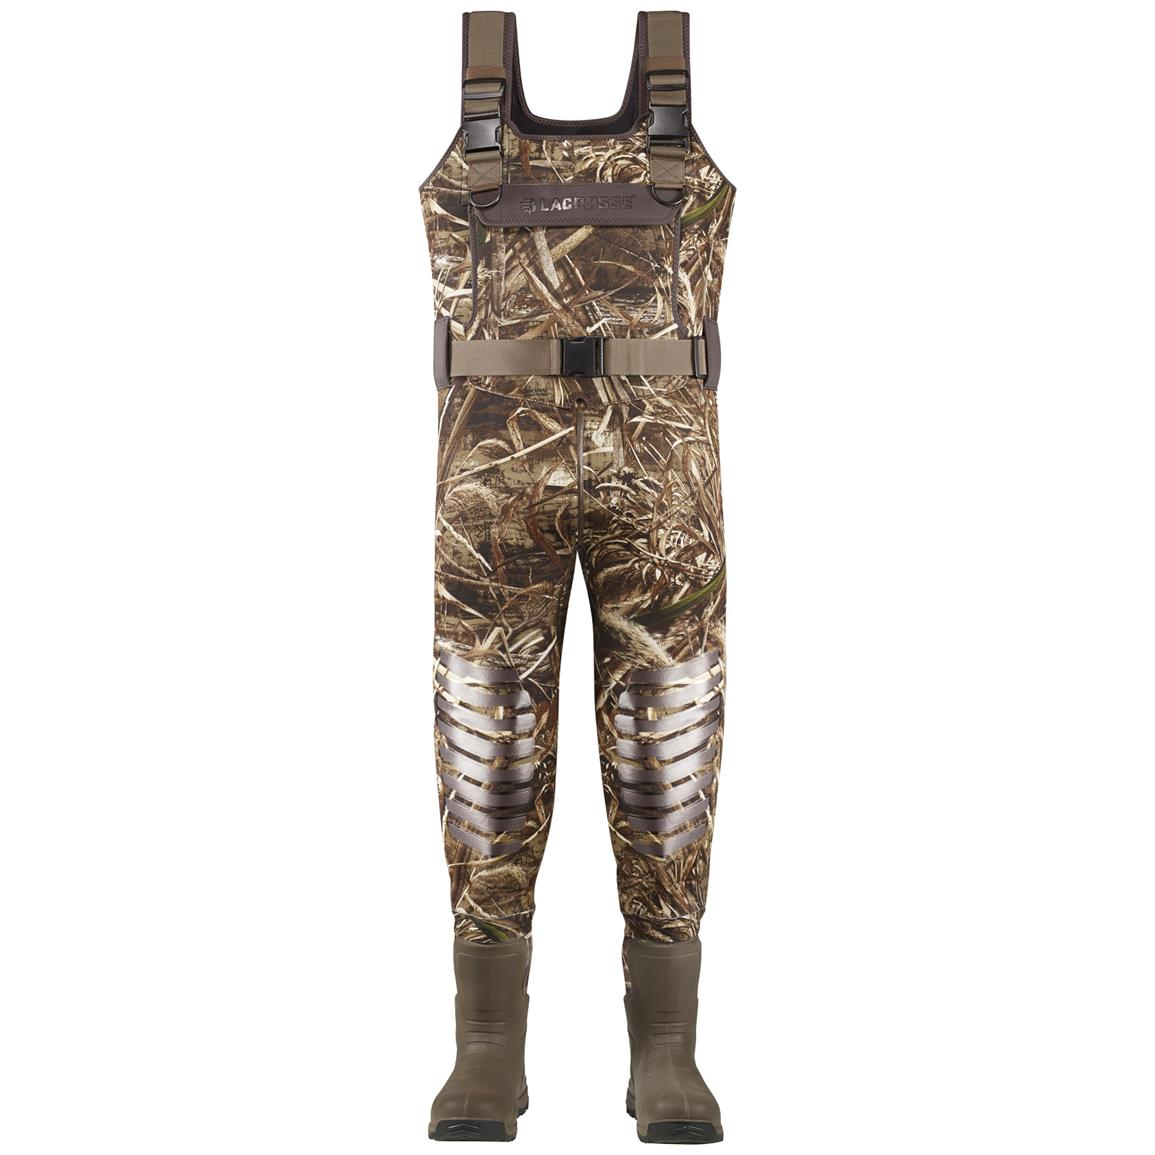 Men's Lacrosse AeroTuff Waders, Realtree MAX-5® - Front view